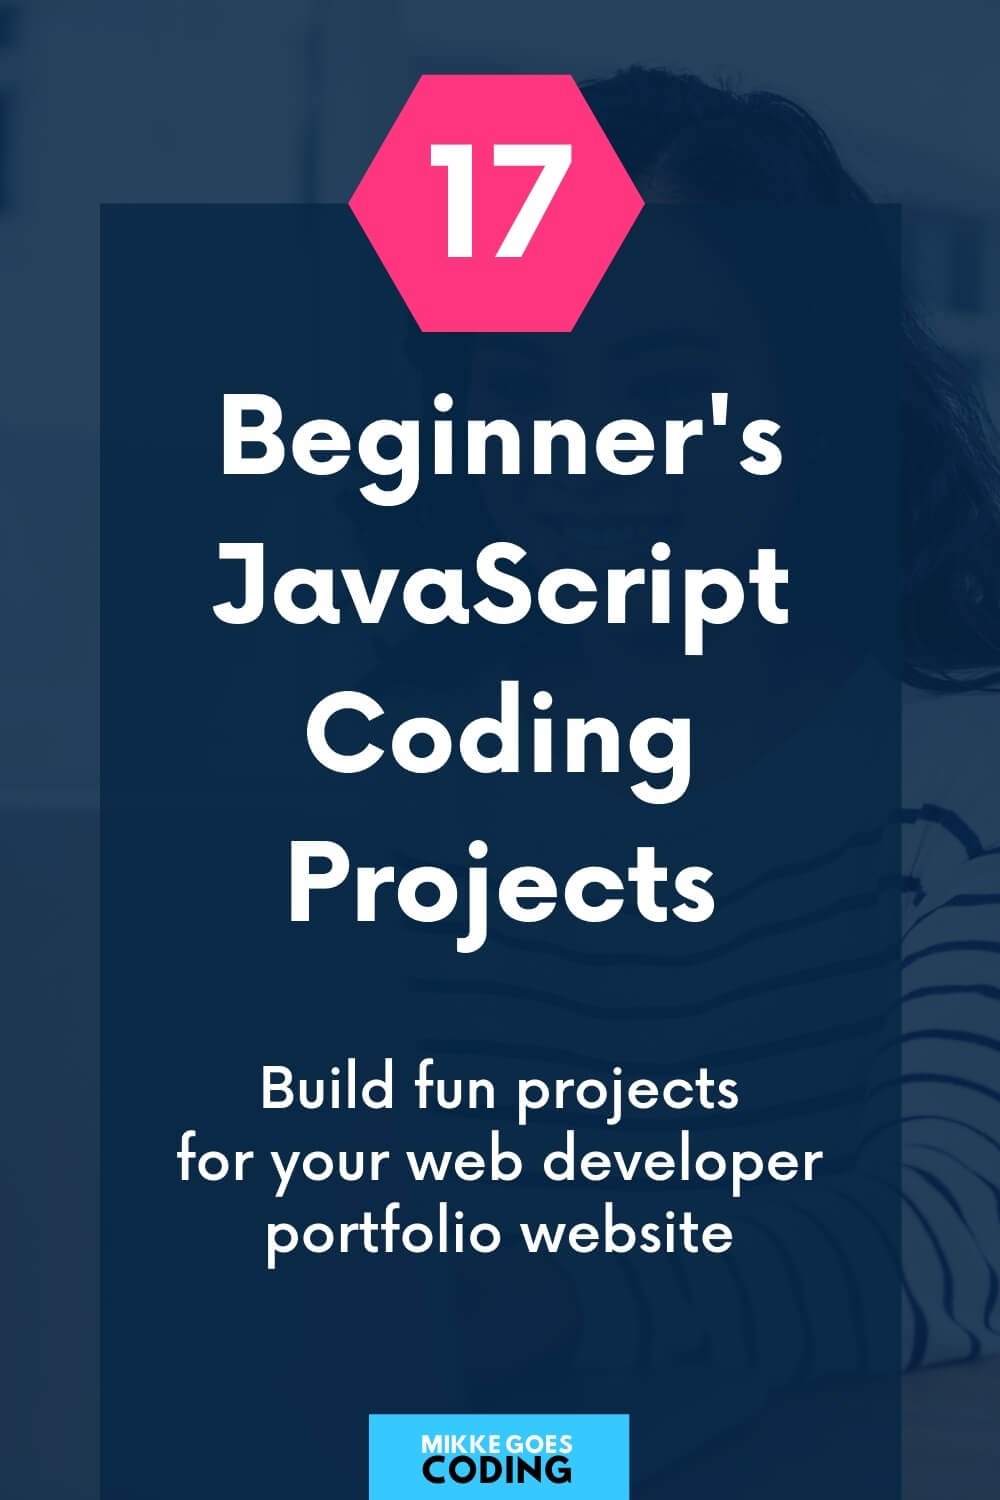 Beginner-level JavaScript coding project ideas - MikkeGoes